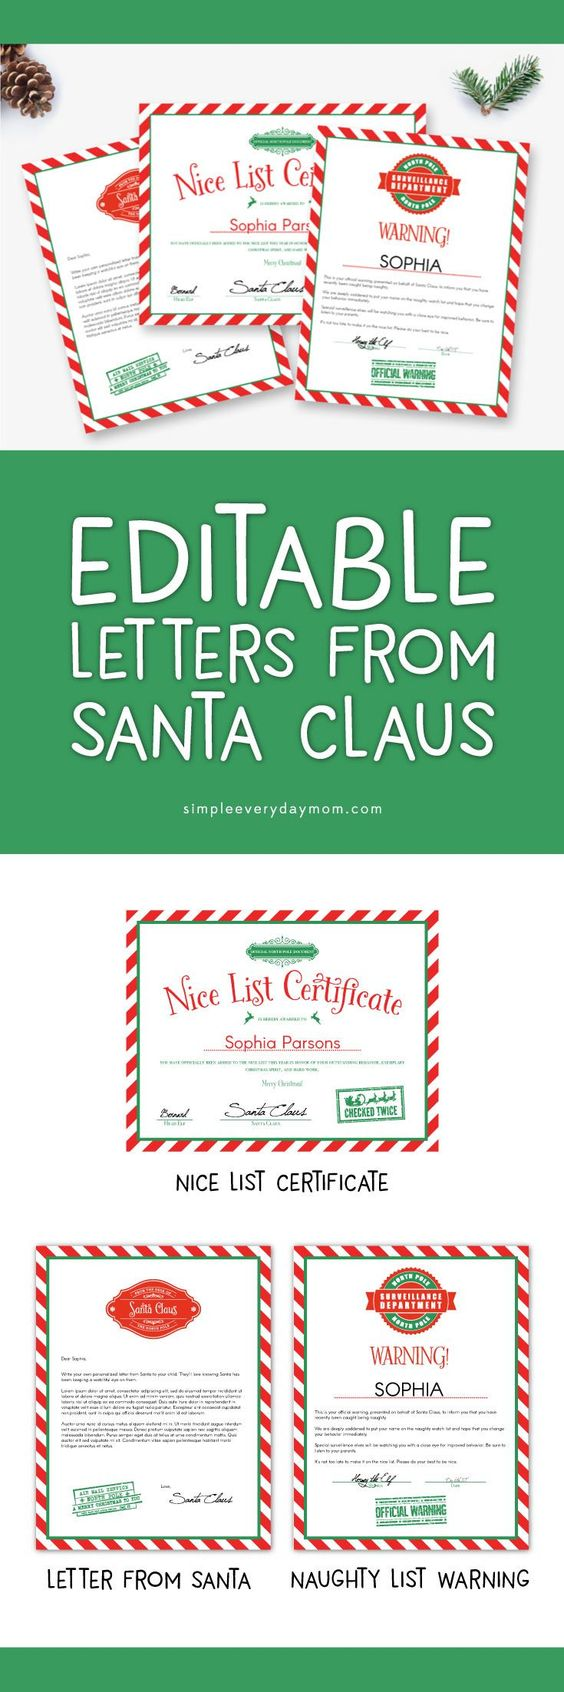 Nice list certificate from santa mistletoe gift package letters nice list certificate from santa mistletoe gift package letters and nice list certificates from santa pinterest nice list spiritdancerdesigns